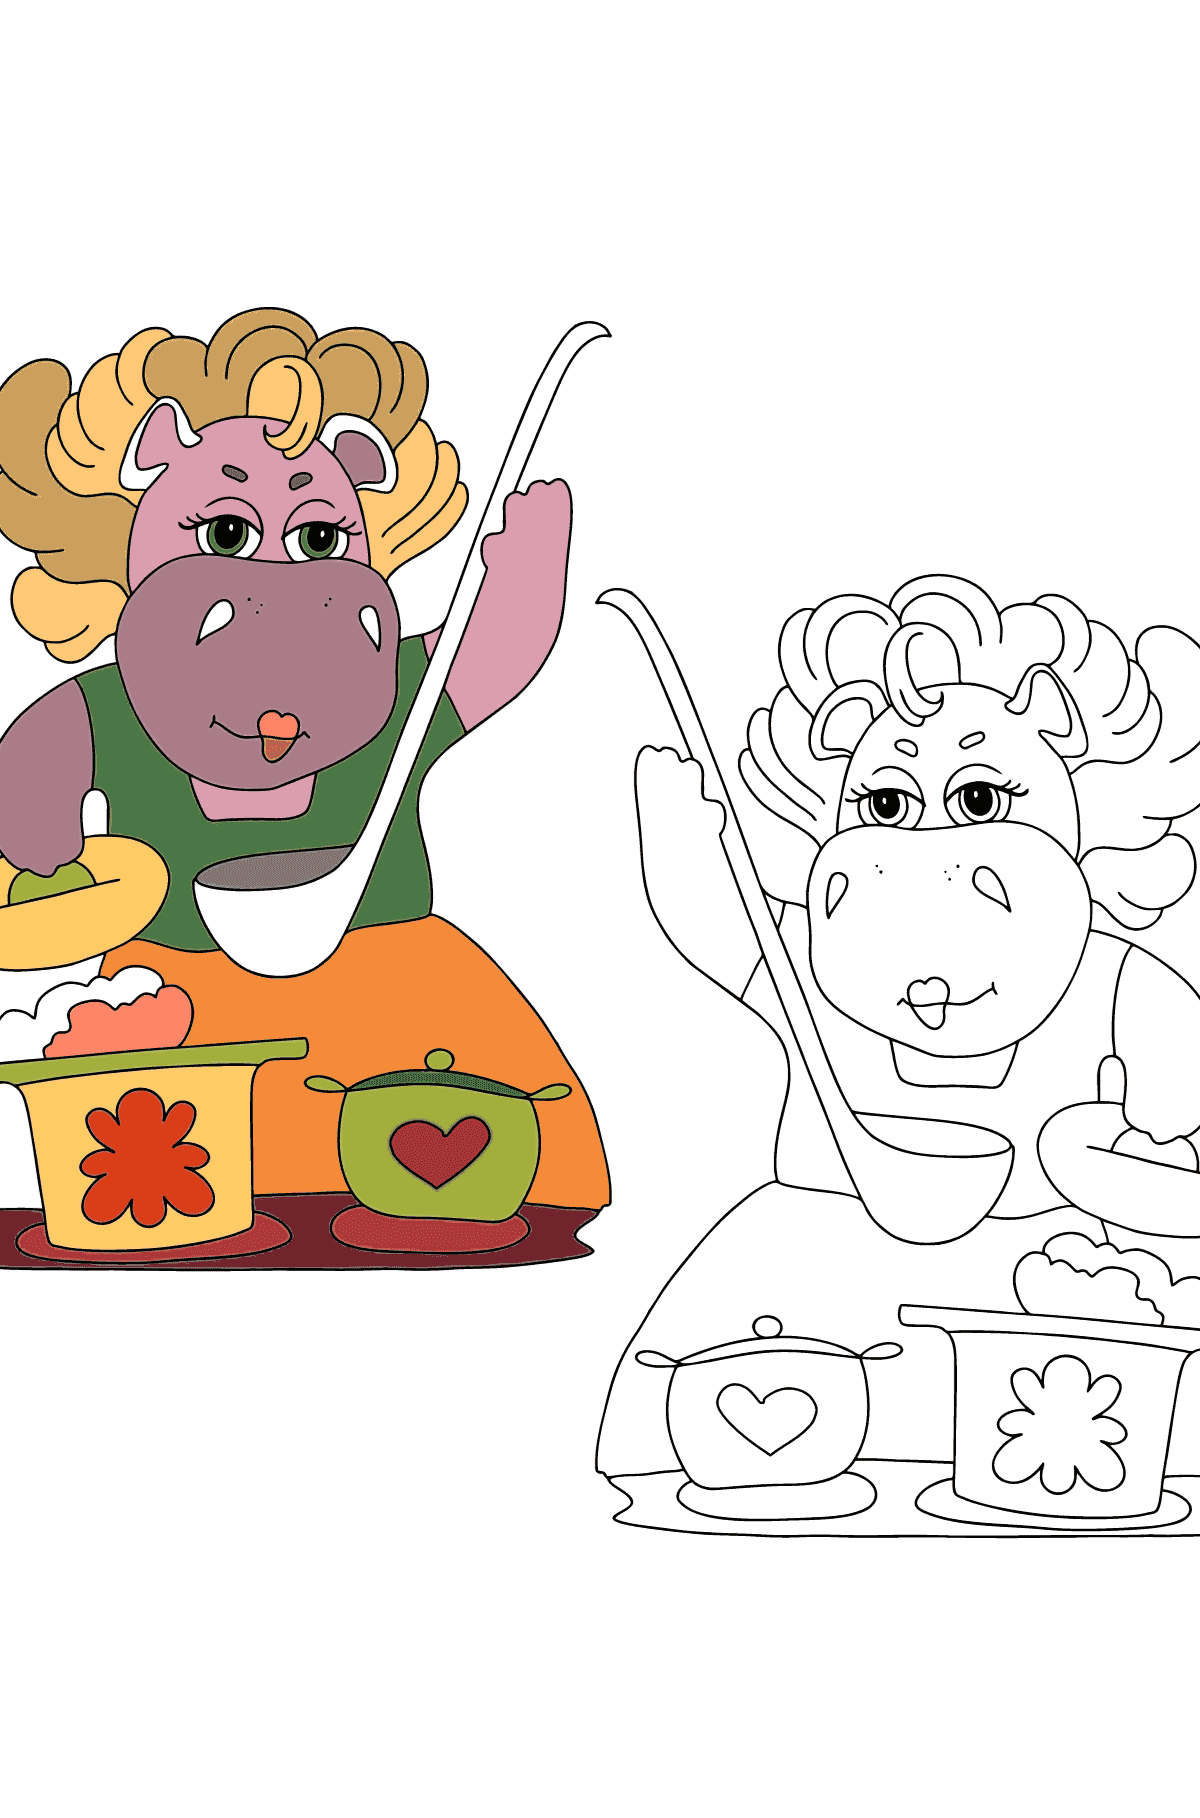 Coloring Page - Hippos are Cooking a Delicious Lunch for Children